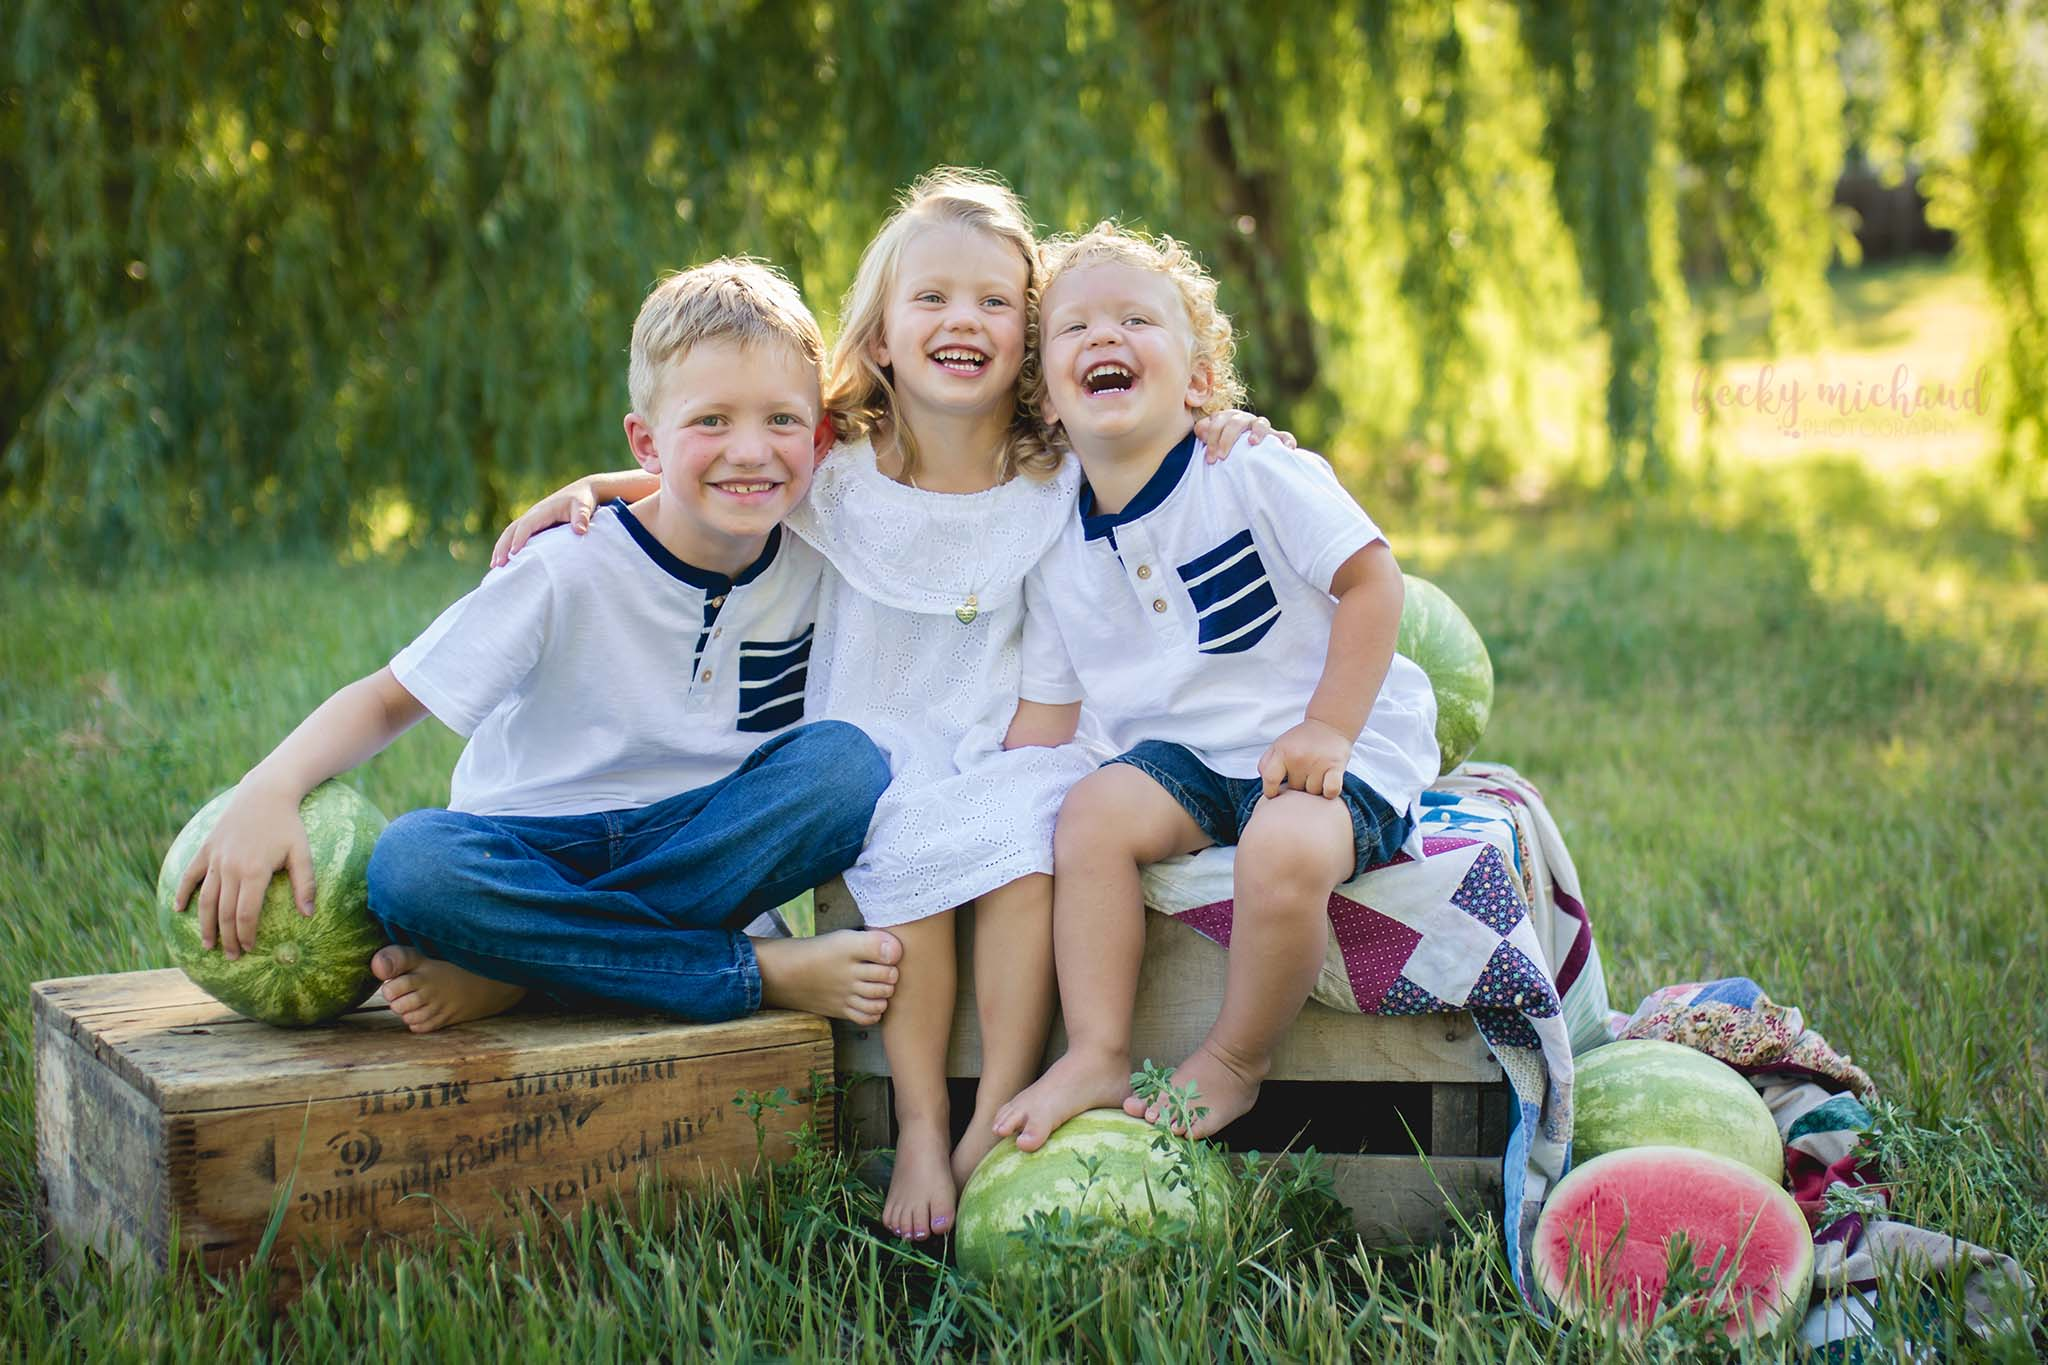 Three siblings laughing together during their watermelon mini session photo shoot